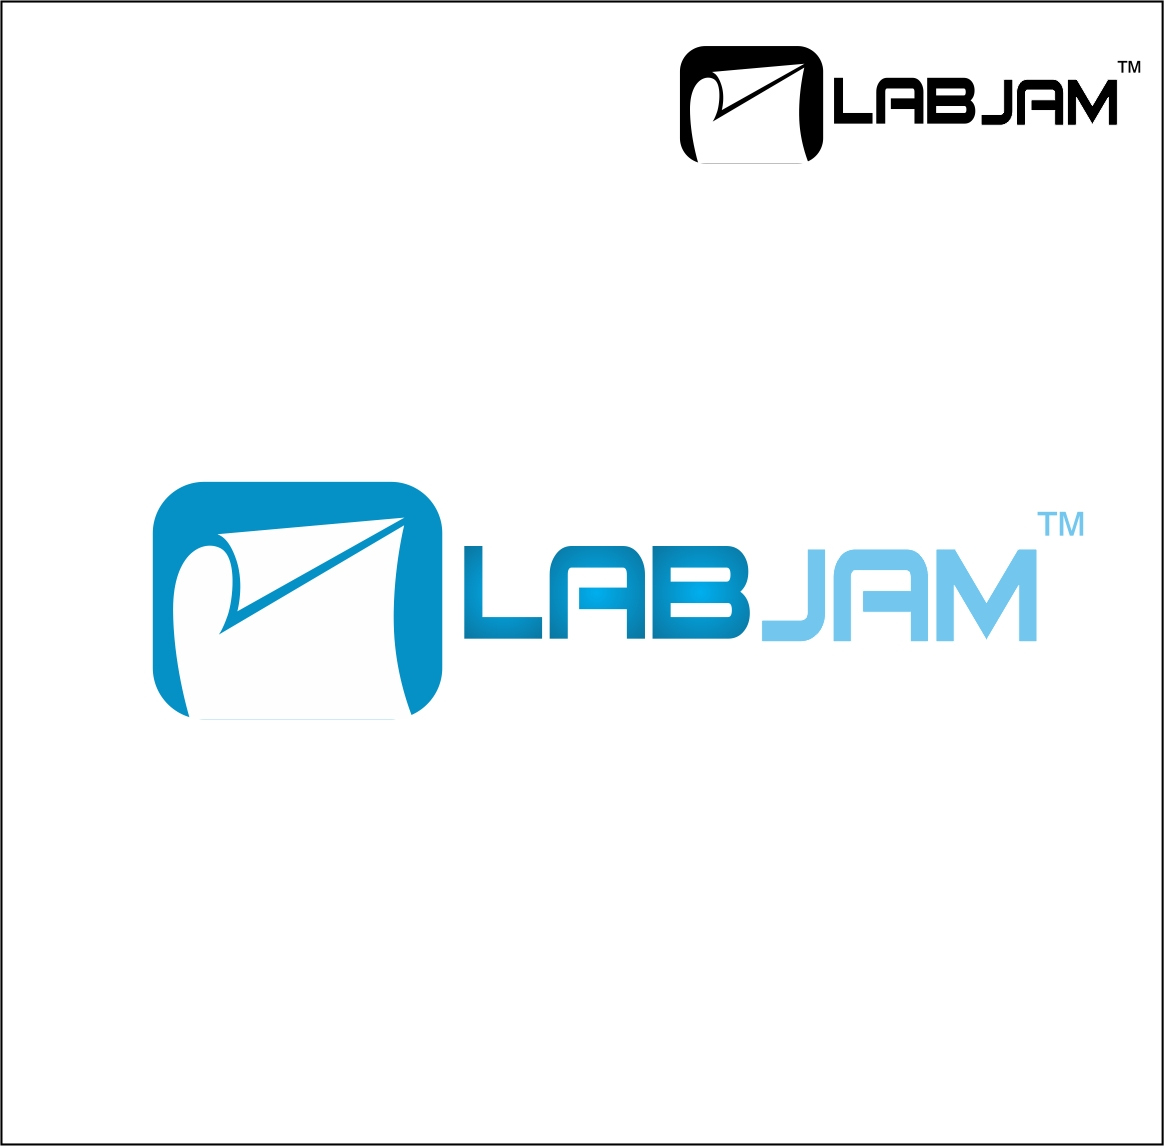 Logo Design by arkvisdesigns - Entry No. 157 in the Logo Design Contest Labjam.